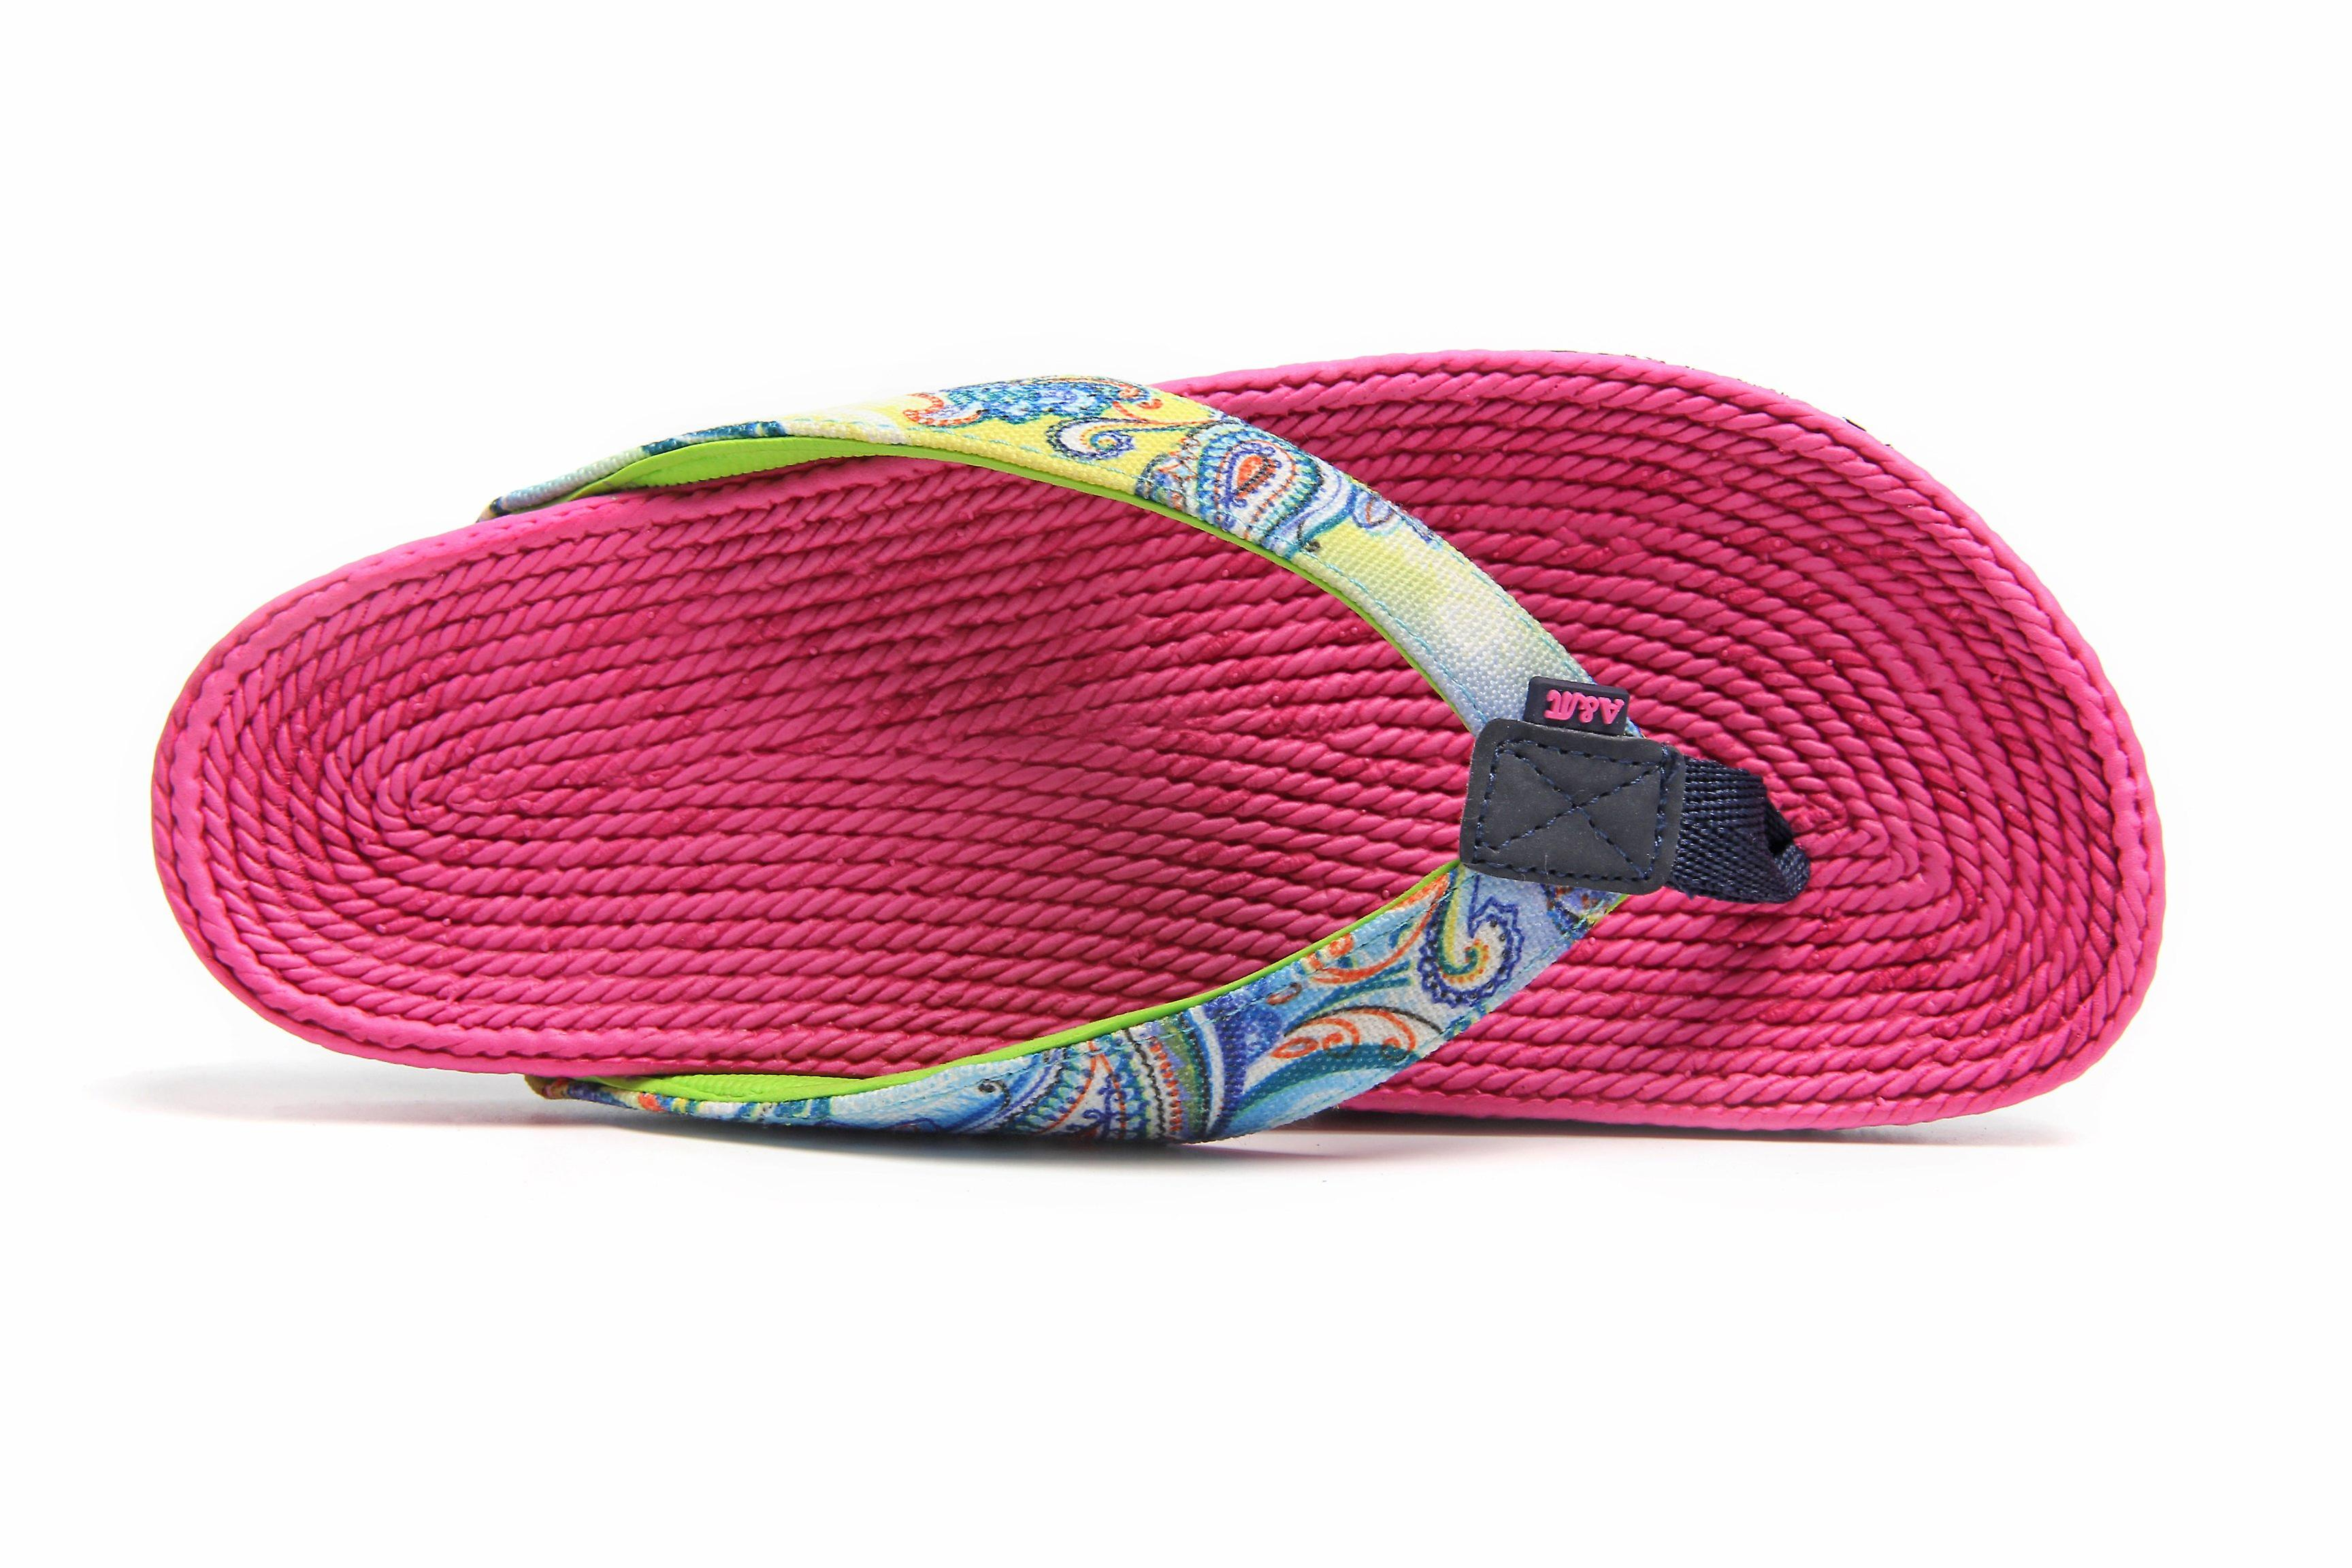 Atlantis Shoes Women Supportive Cushioned Comfortable Sandals Flip Flops Fancy Whirl Fuchsia Pink